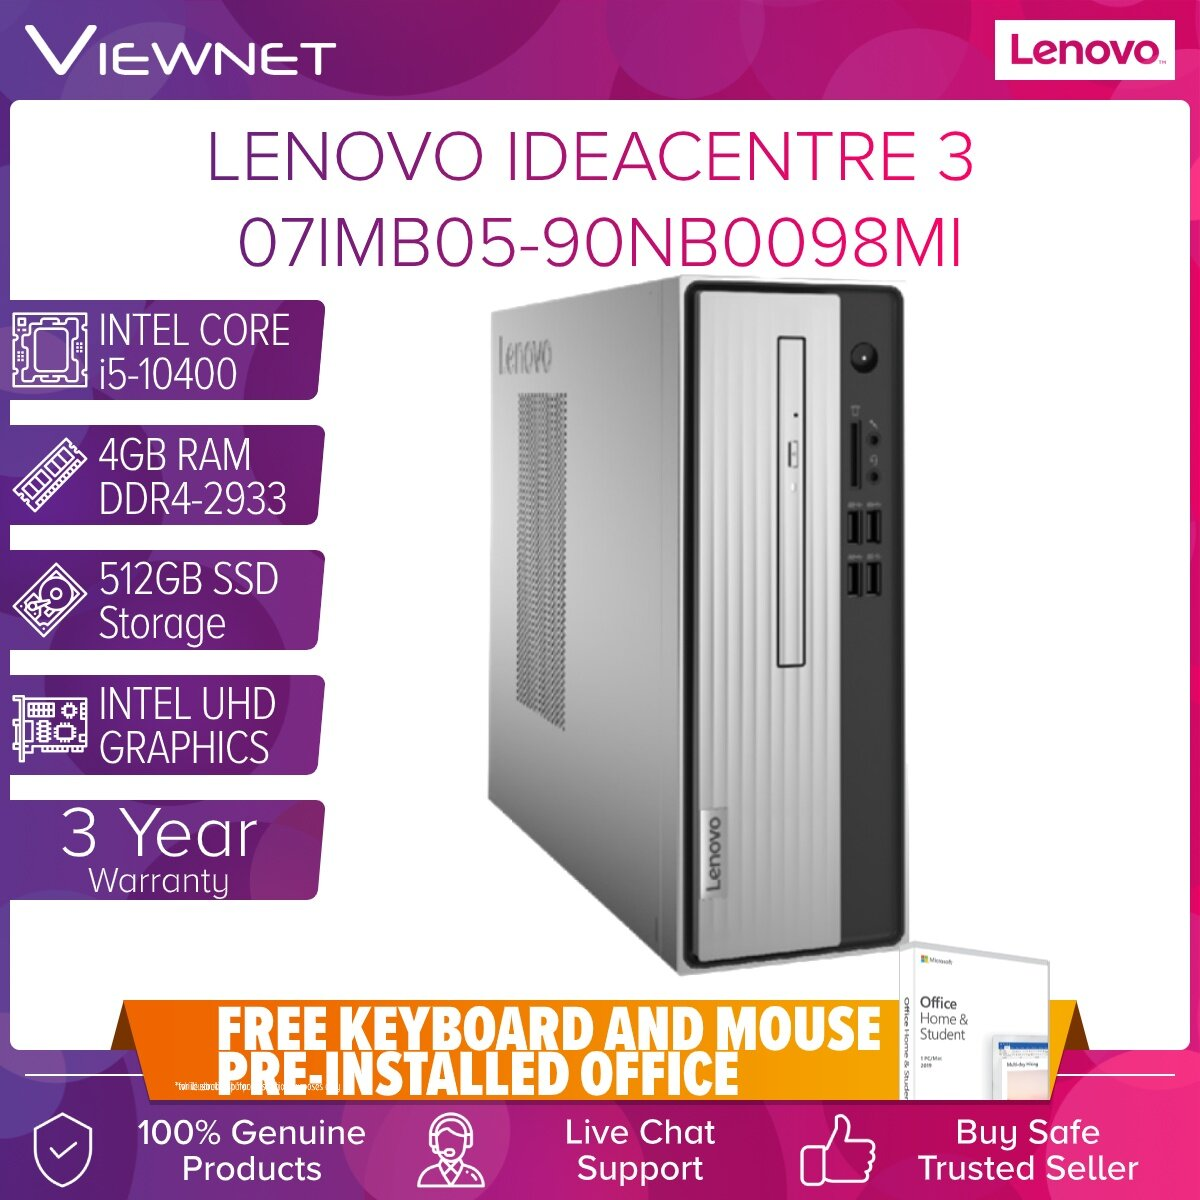 LENOVO IDEACENTER Desktop 07IMB05-90NB0098MI INTEL CORE I5-10400 4GB DDR4 512GB SSD DVDRW INTEL HD KB+MSE PRE-LOADED OFFICE H&S  3 Years Warranty Onsite